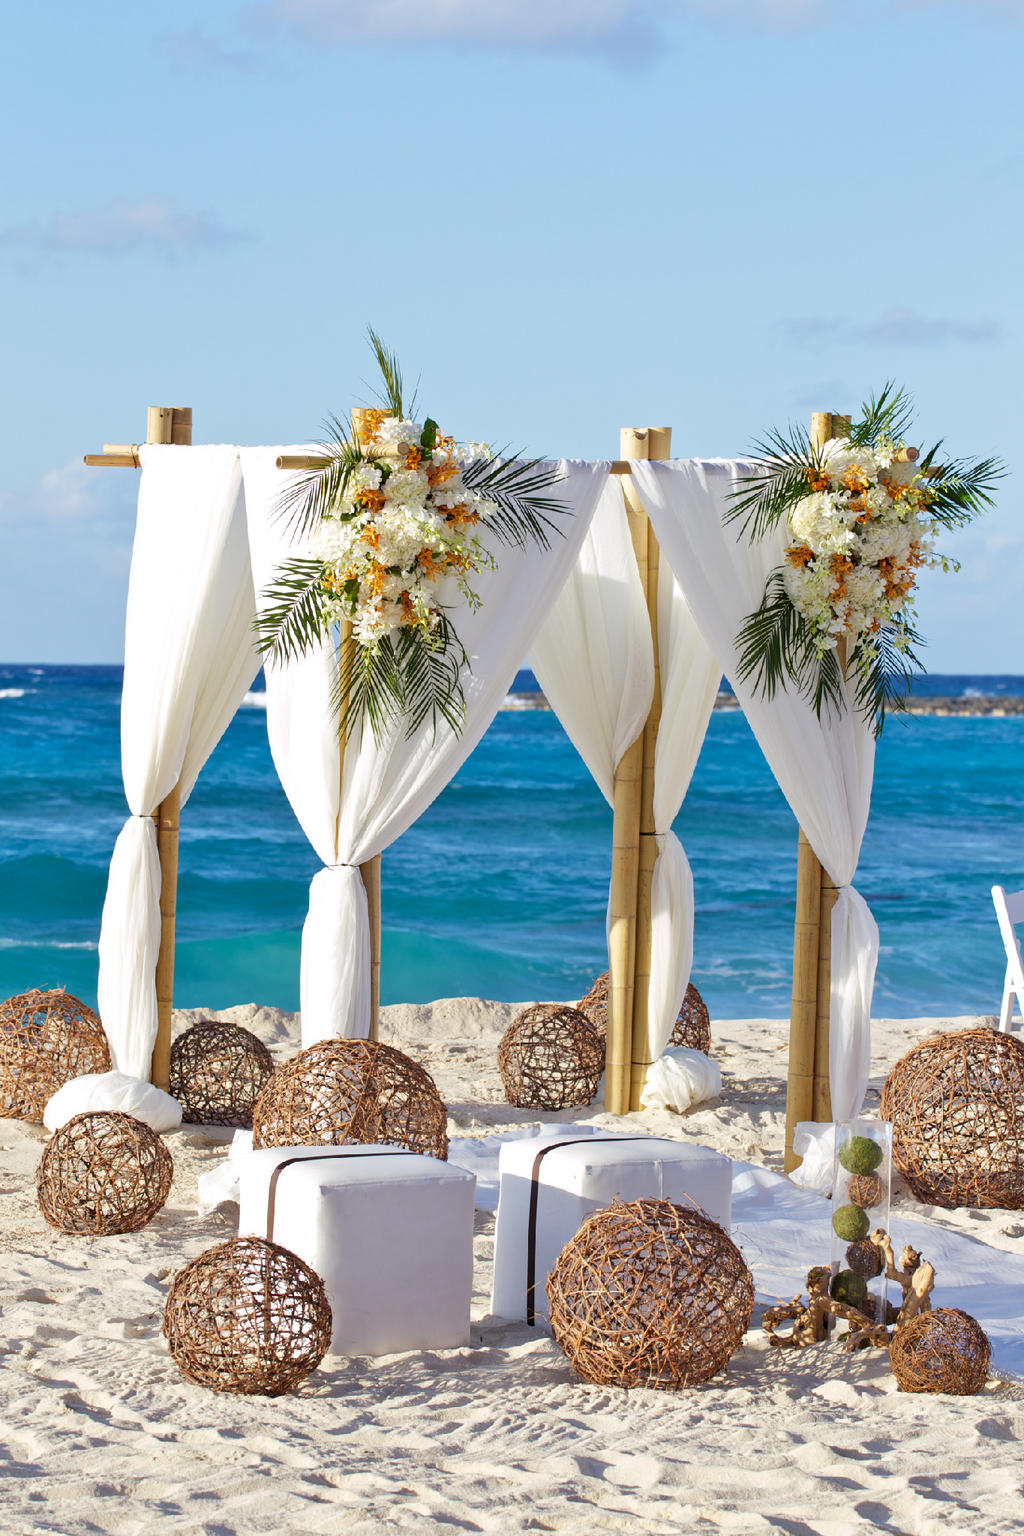 Each Islands Offers You Beautiful Hotels And Resorts Here Is A Quick Idea Of Where Can Host Your Wedding